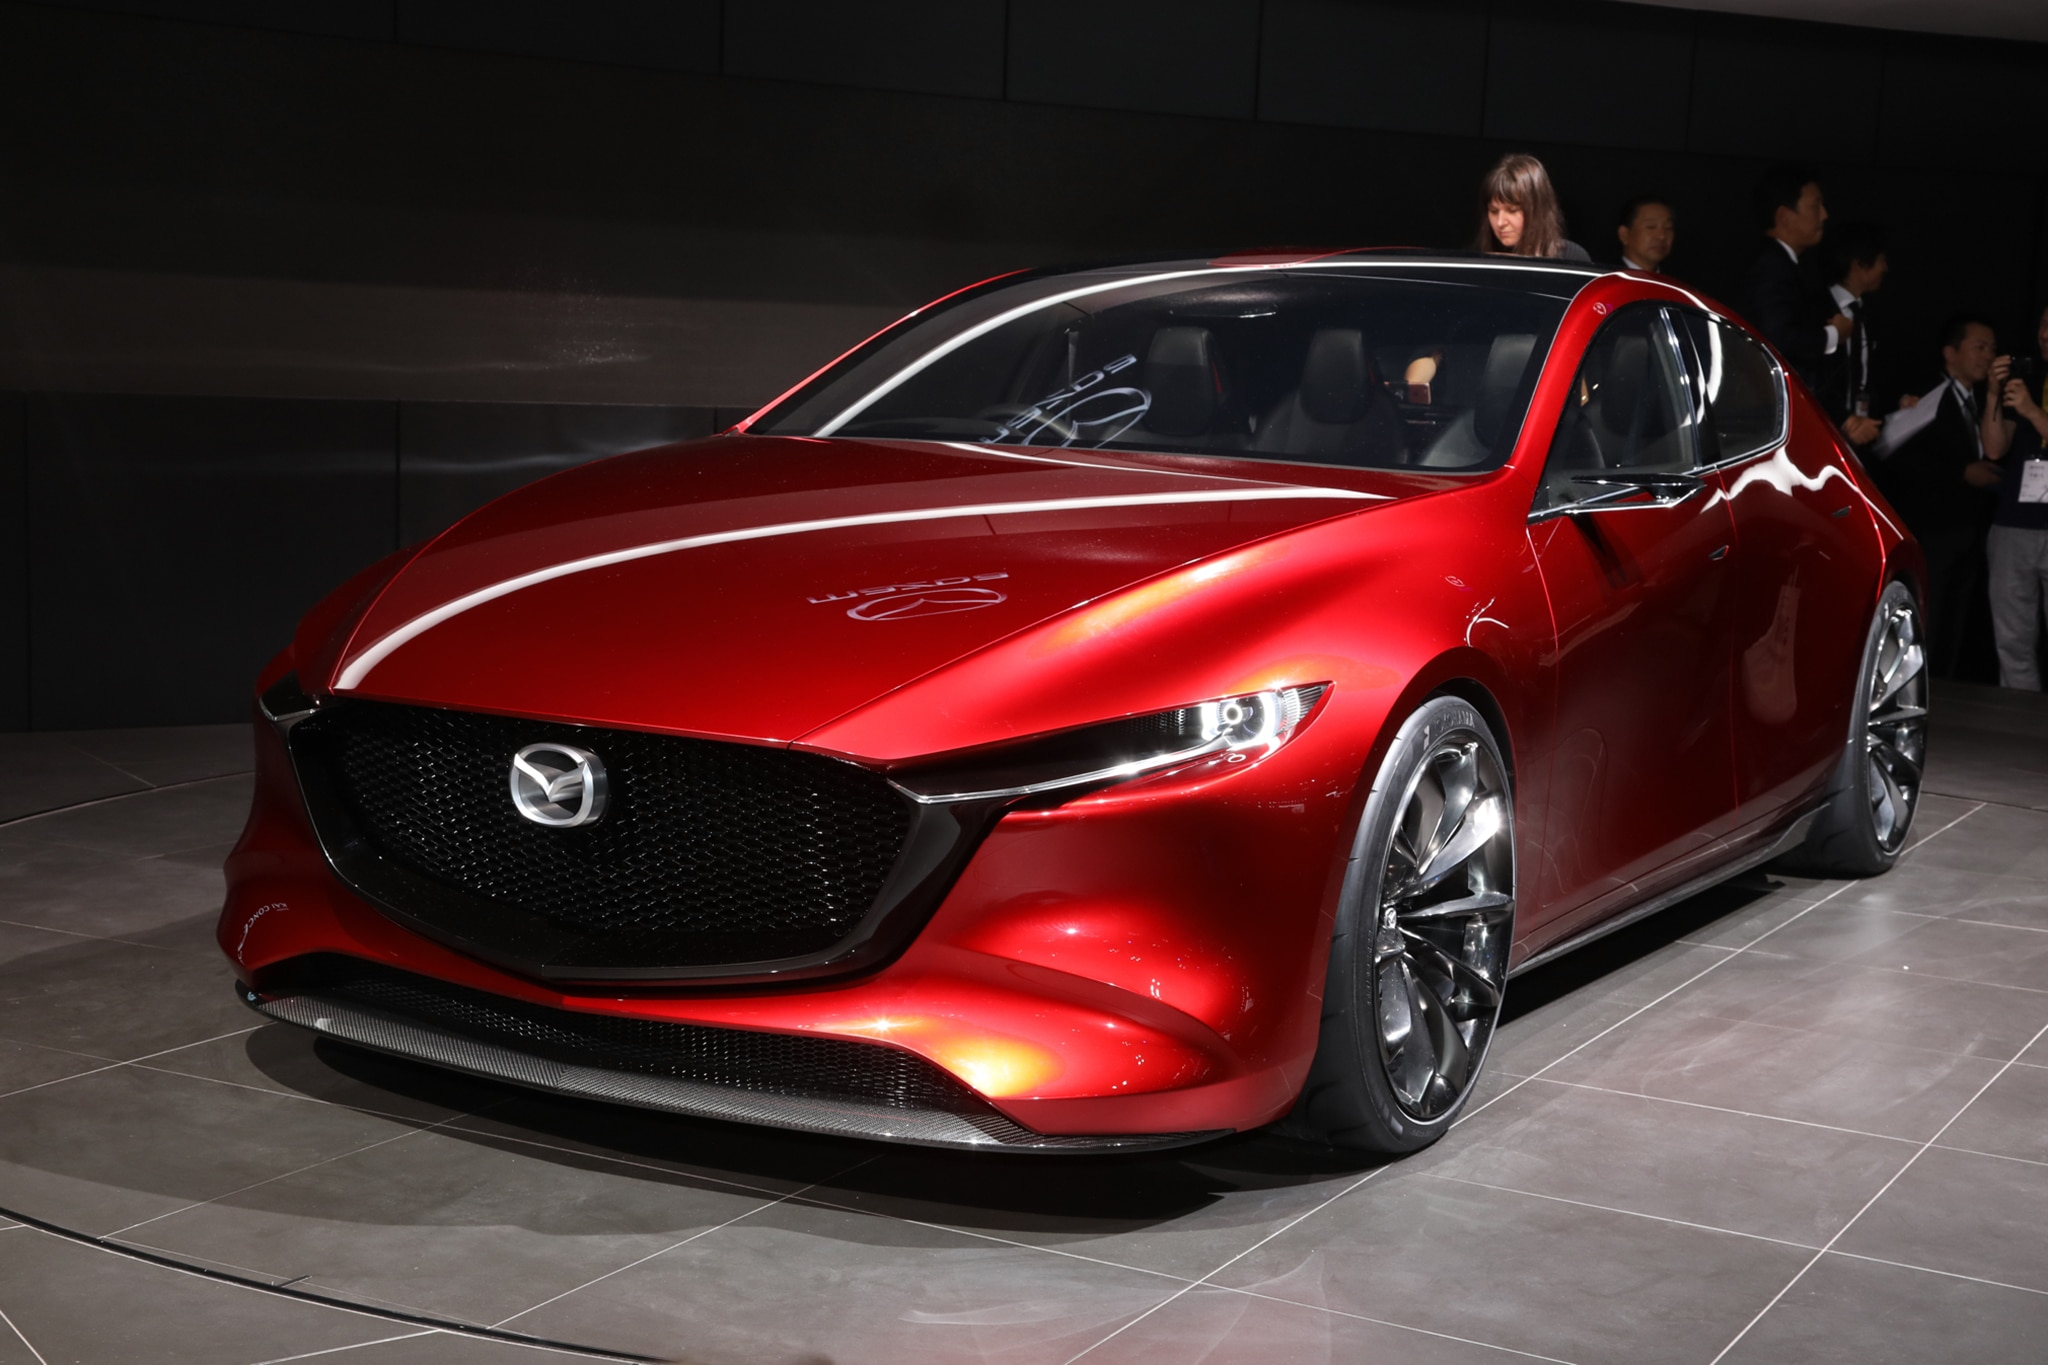 Next-gen Mazda 3 previewed with Kai technology concept